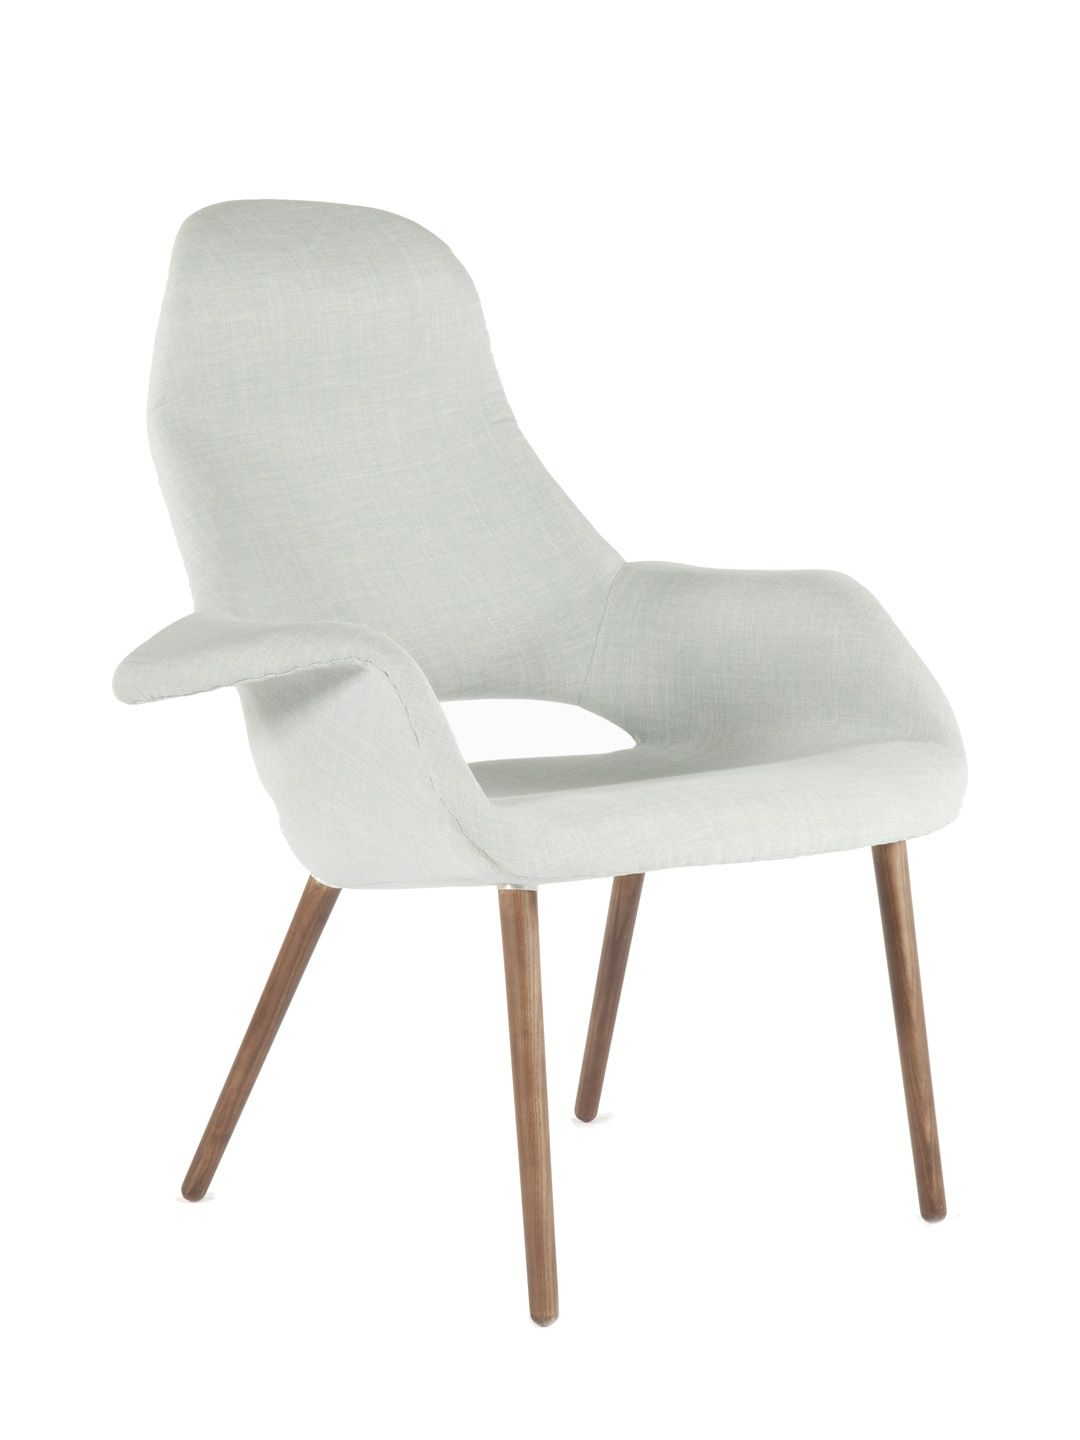 Organic Chair By Control Brand At Gilt